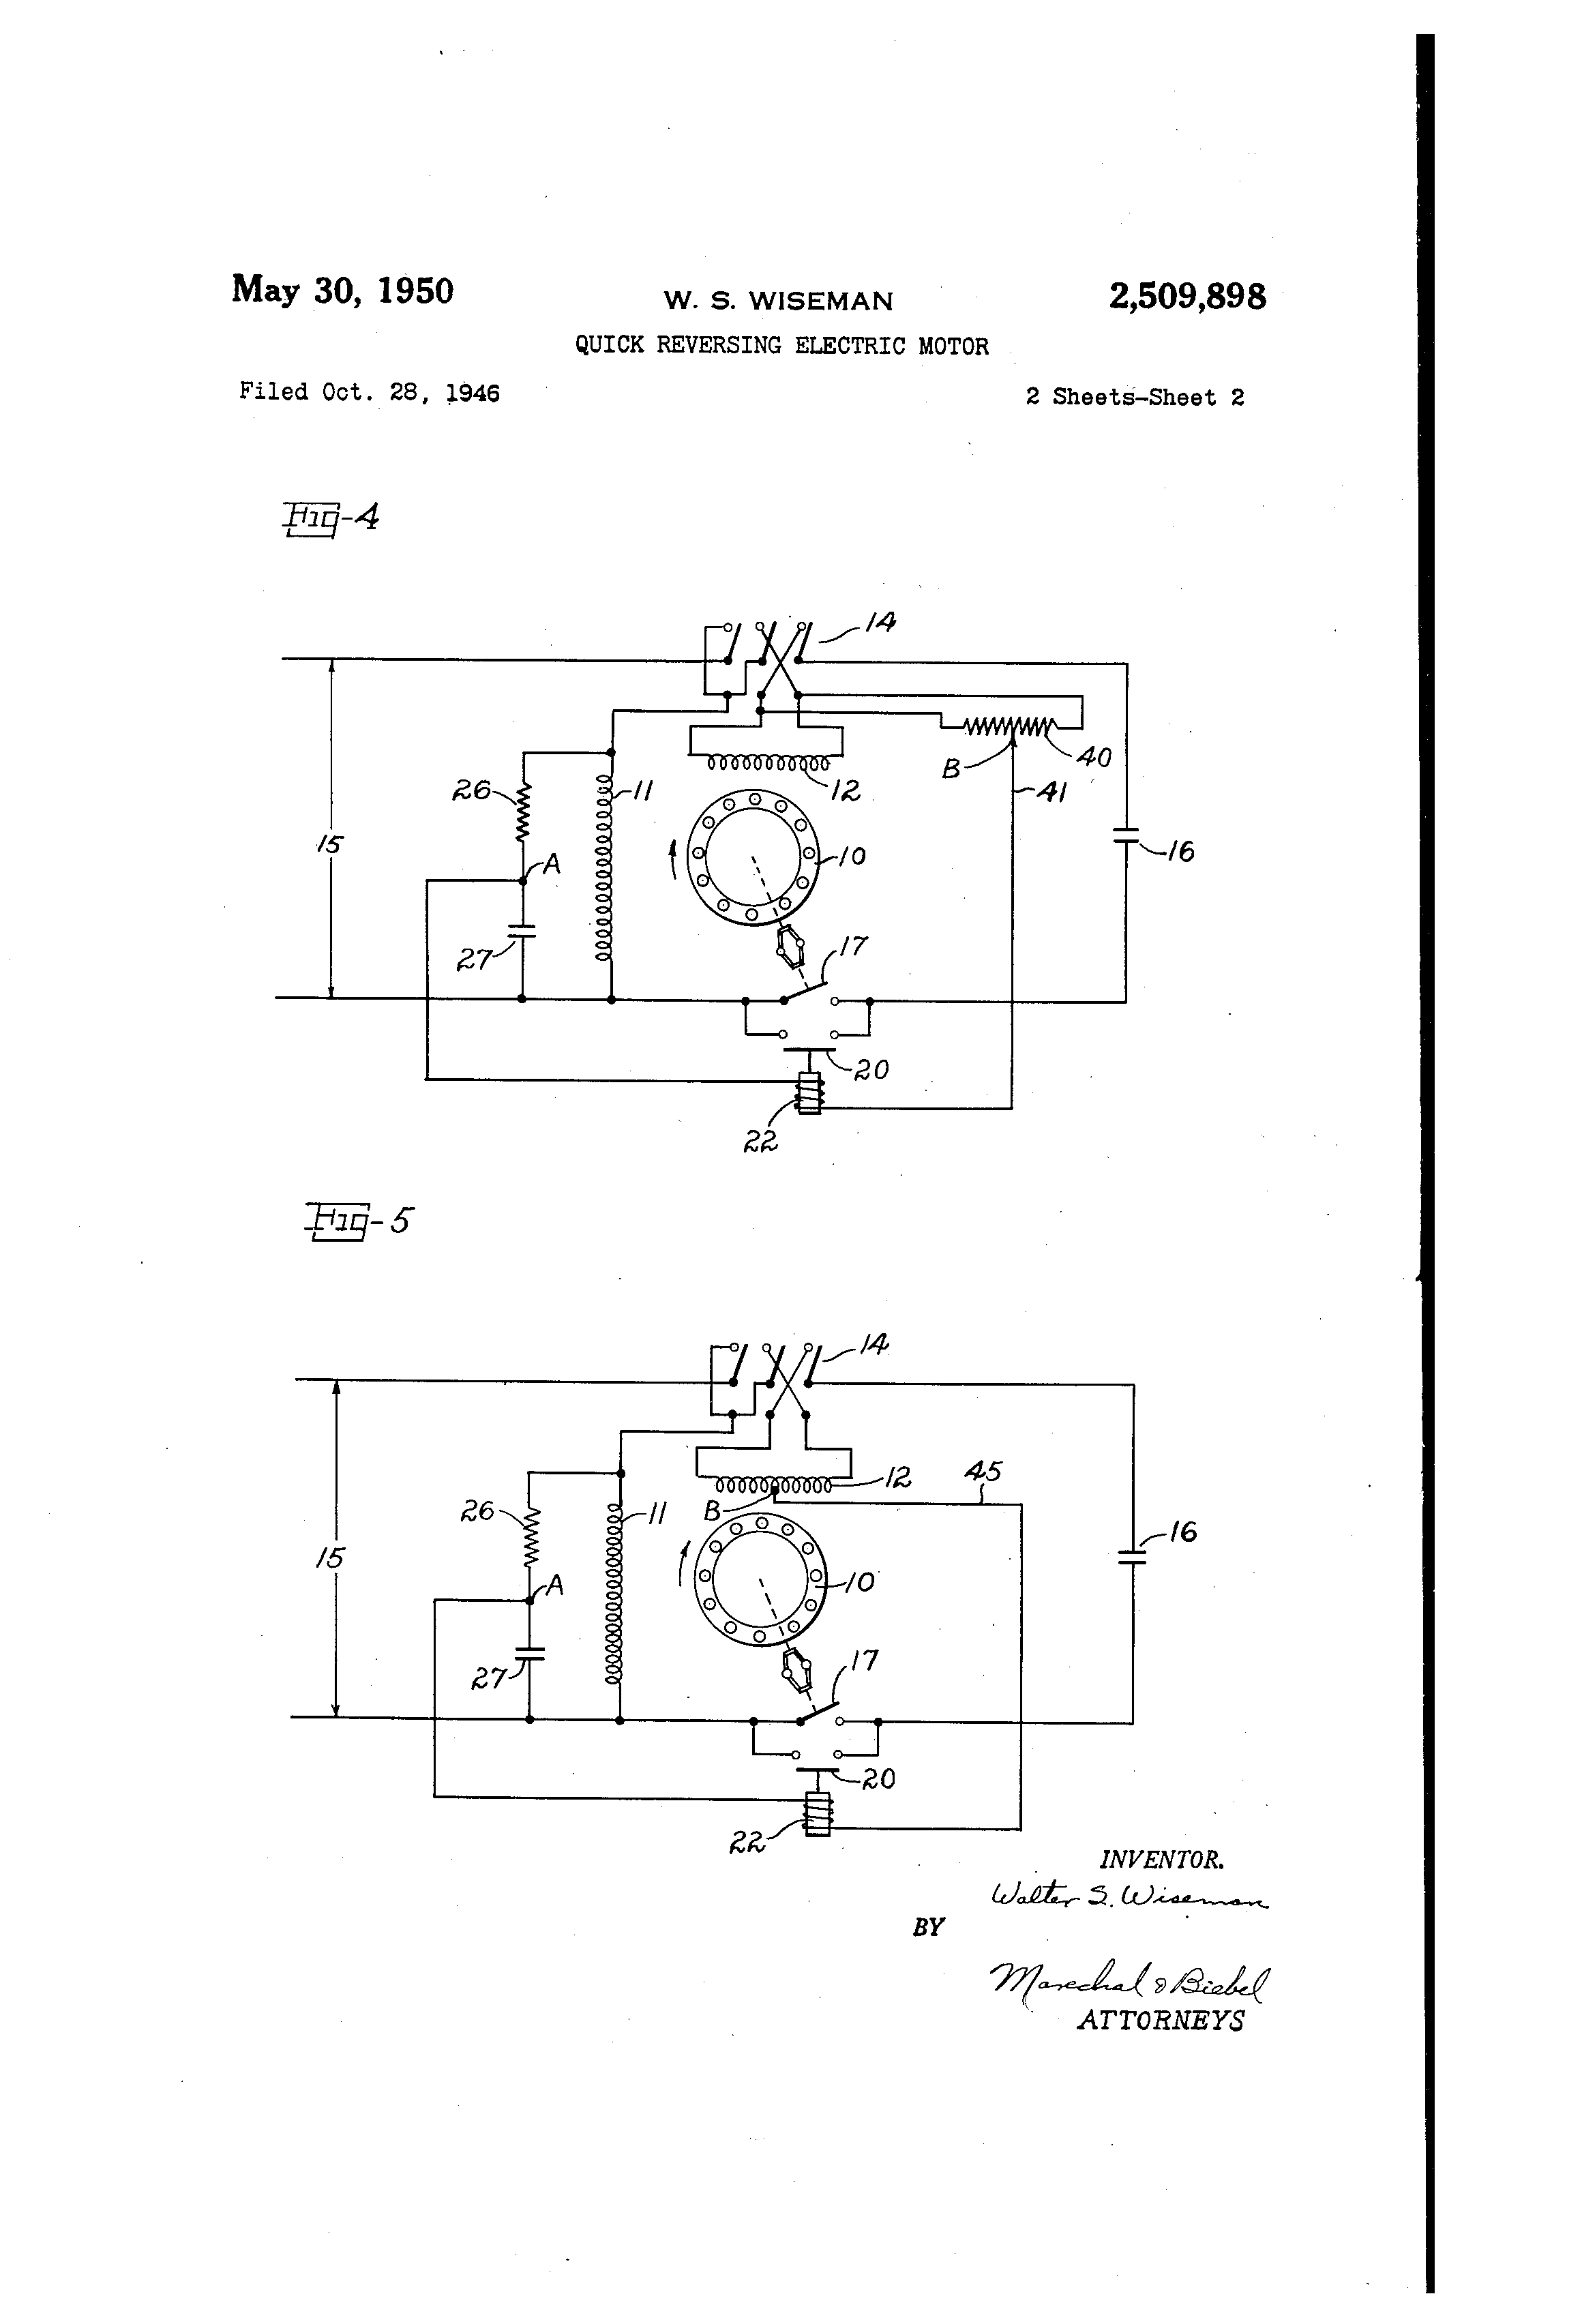 allen bradley 509 aod wiring diagram Collection-Wiring Diagram for Single Phase Motor Luxury Patent Us Single Phase Motor Reversing Starter Google 11-k